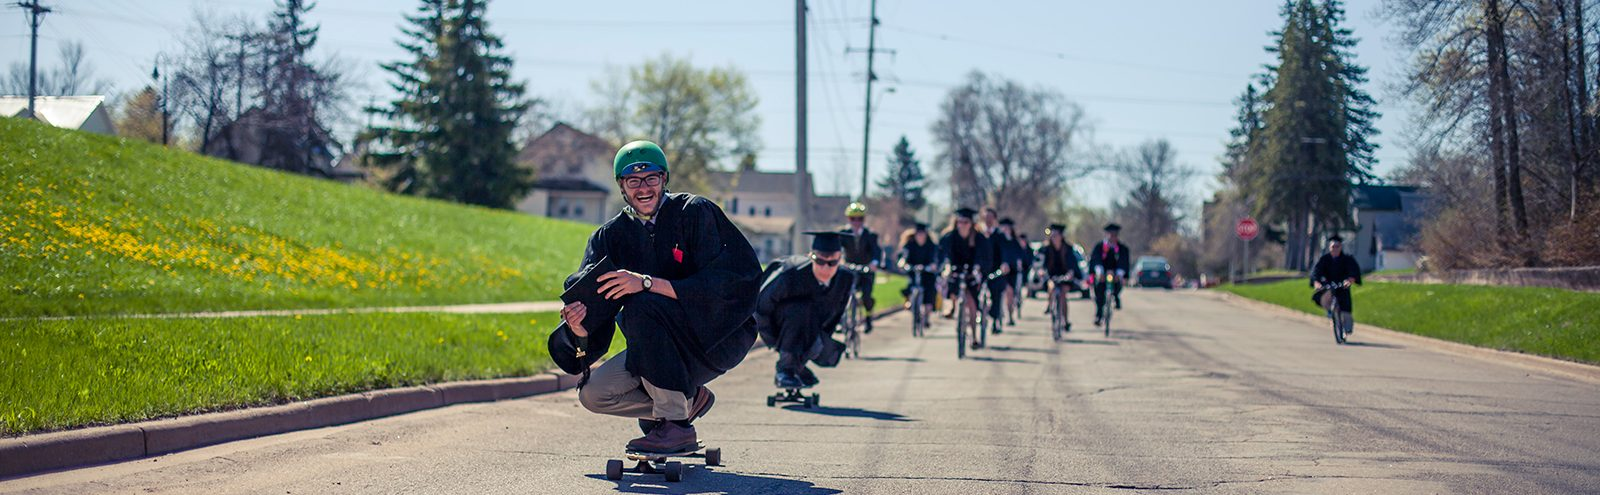 Graduates skating to commencement